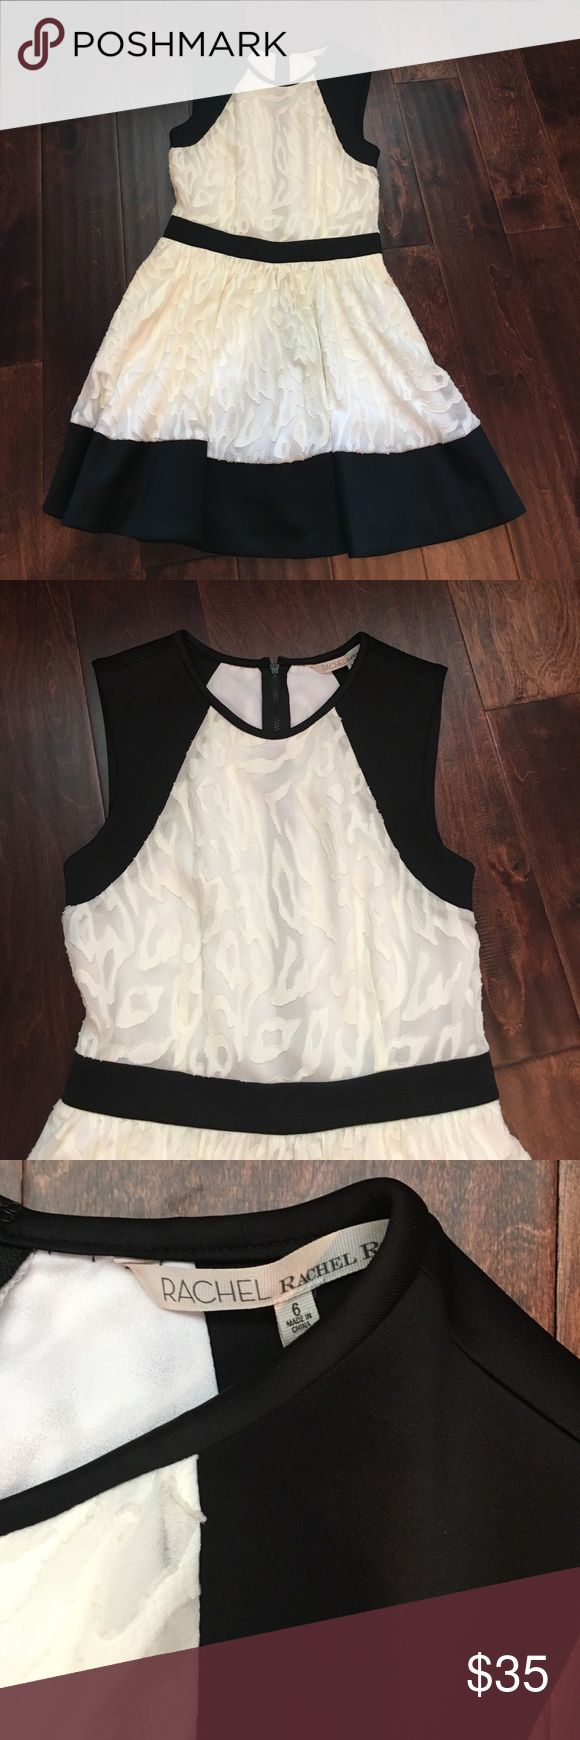 RACHEL by Rachel Roy- black and cream mini dress. EUC- Rachel by Rachel Roy dress. Worn once- no signs of wear. This is a really cute party dress. It could also be worn with some flat sandals for a more casual look. RACHEL Rachel Roy Dresses